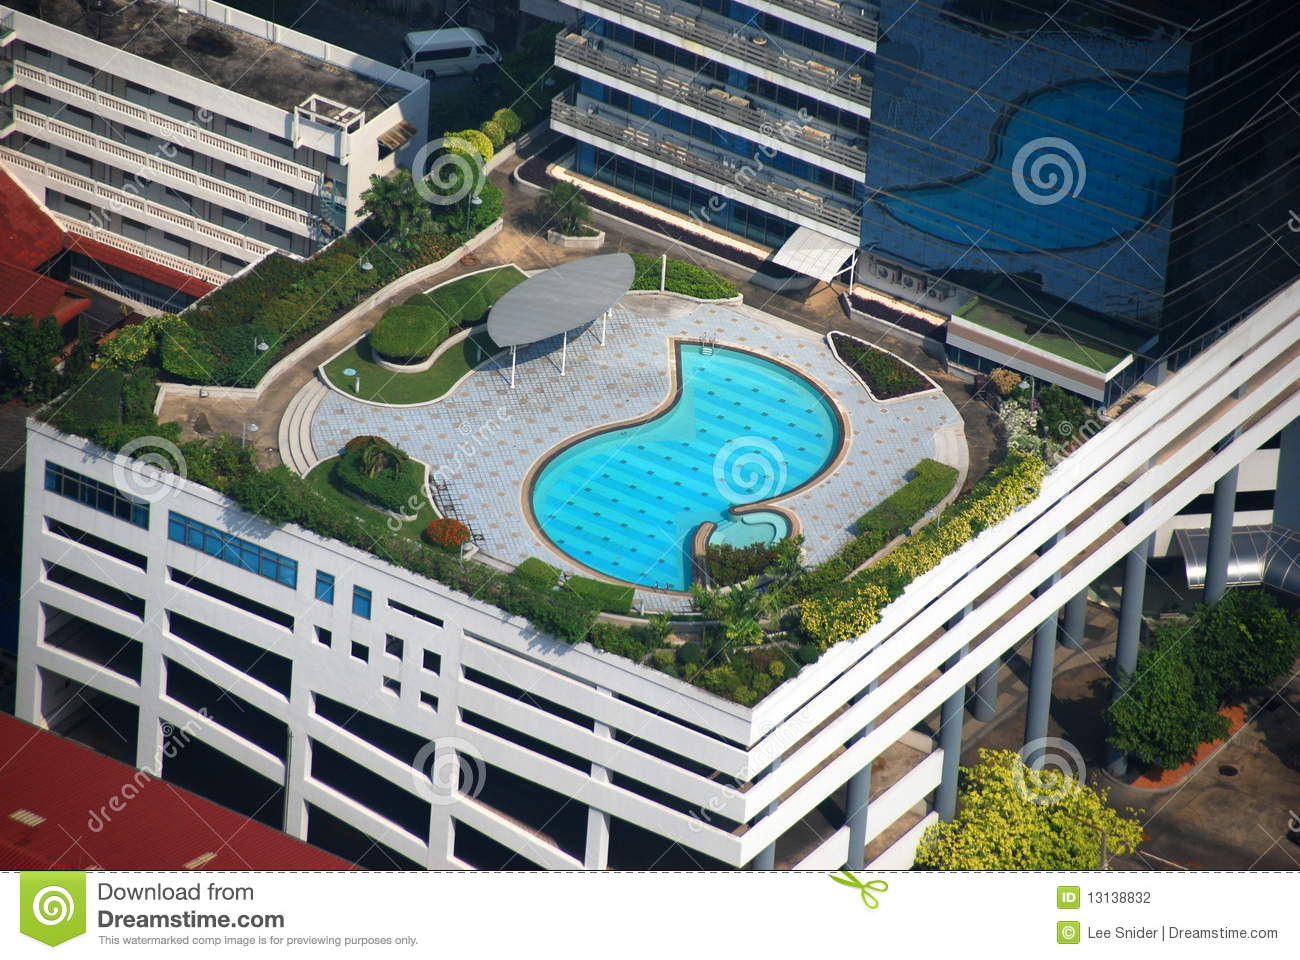 Best Hotels Pool Deck : Bangkok, Thailand: Luxury Hotel Rooftop Pool Stock Photography - Image ...